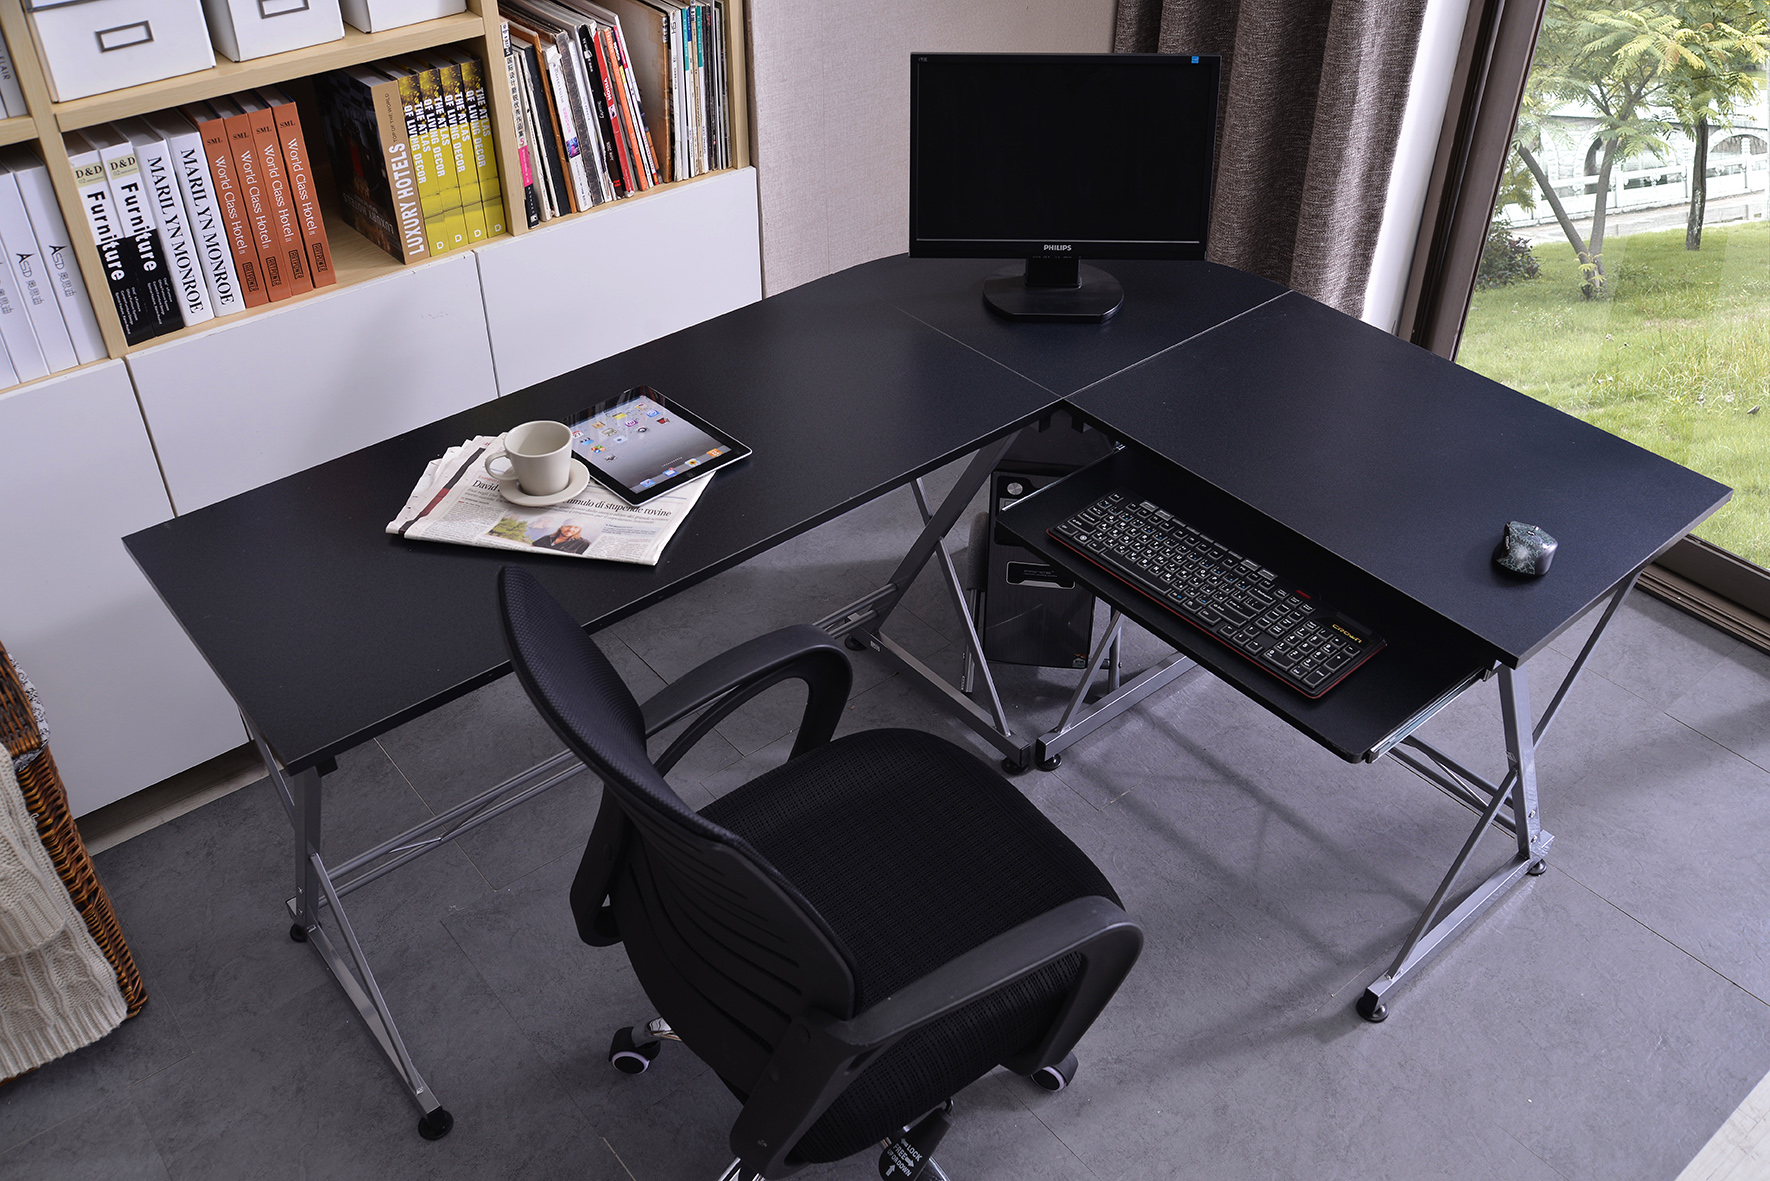 sixbros bureau informatique table de travail diff rentes couleurs ct 3802 ebay. Black Bedroom Furniture Sets. Home Design Ideas